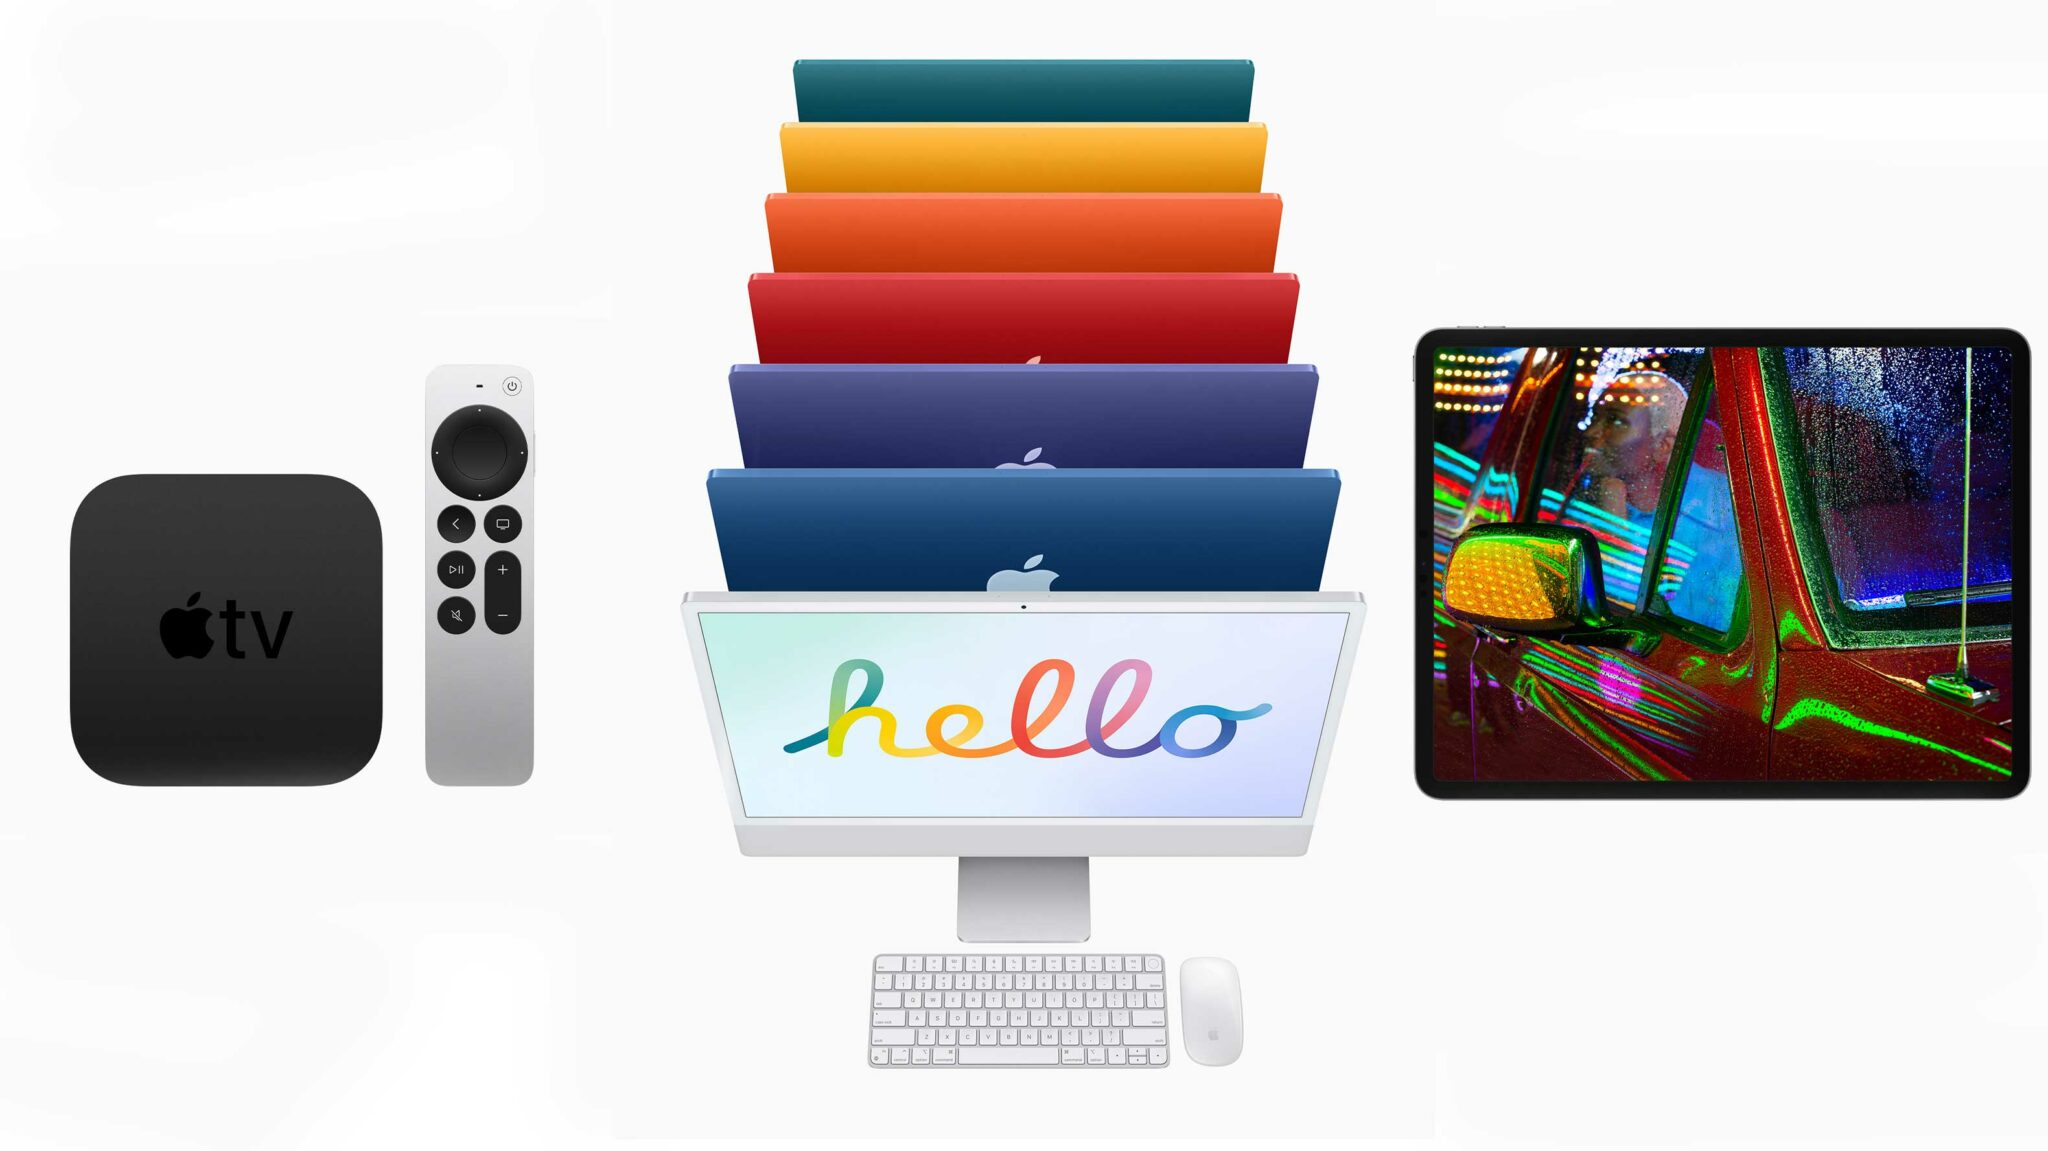 New iMac, Apple TV 4K and iPad Pro are now available to order in Canada